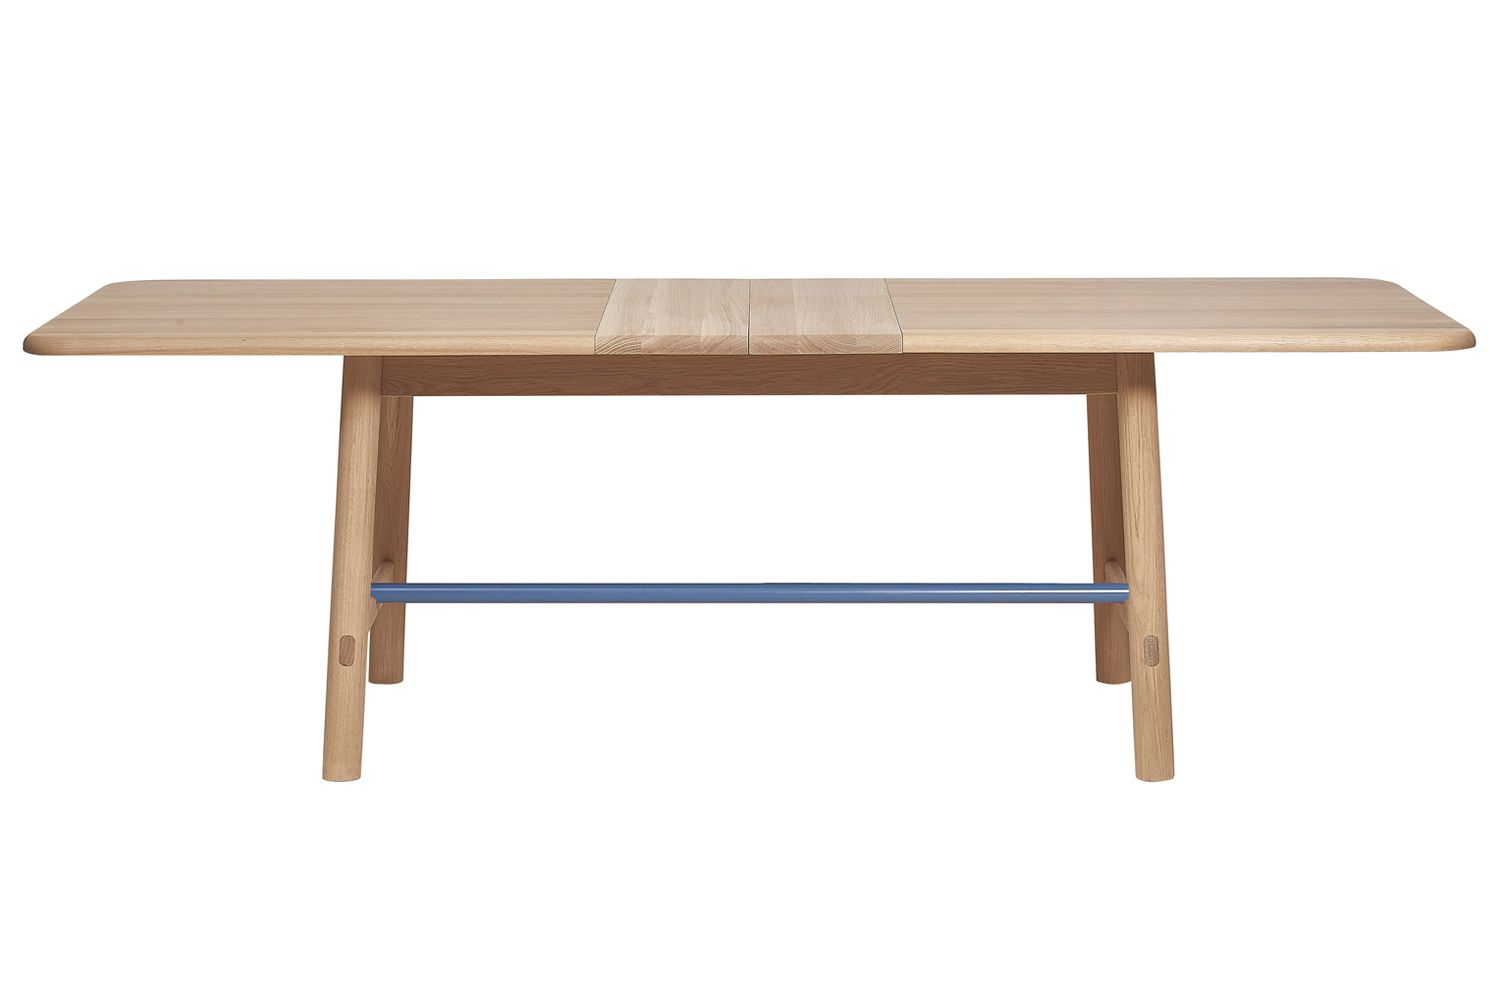 H l ne table rallonge en bois et m tal sediarreda for Table rallonge bois